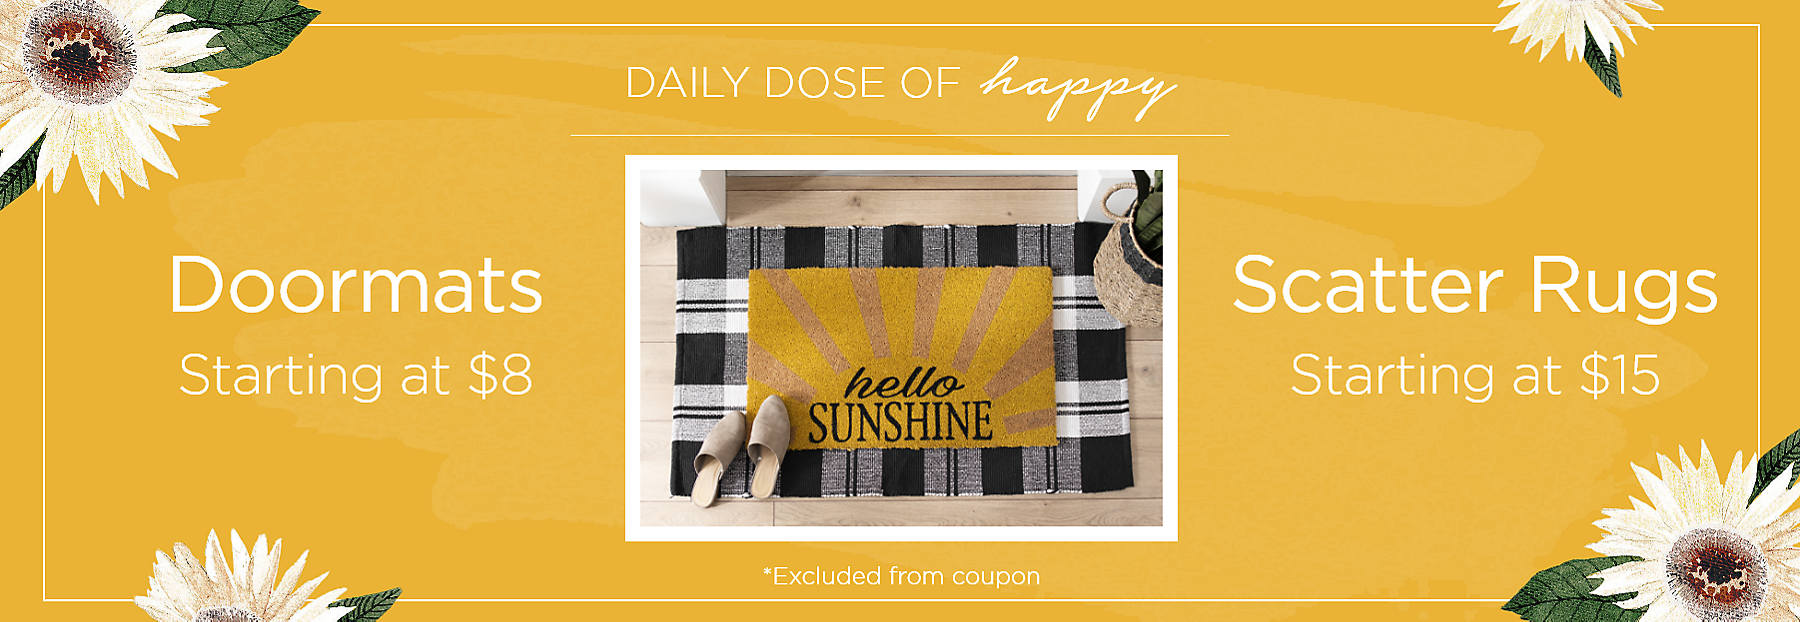 Daily Dose of Happy Doormats Starting at $8 Scatter Rugs Starting at $15